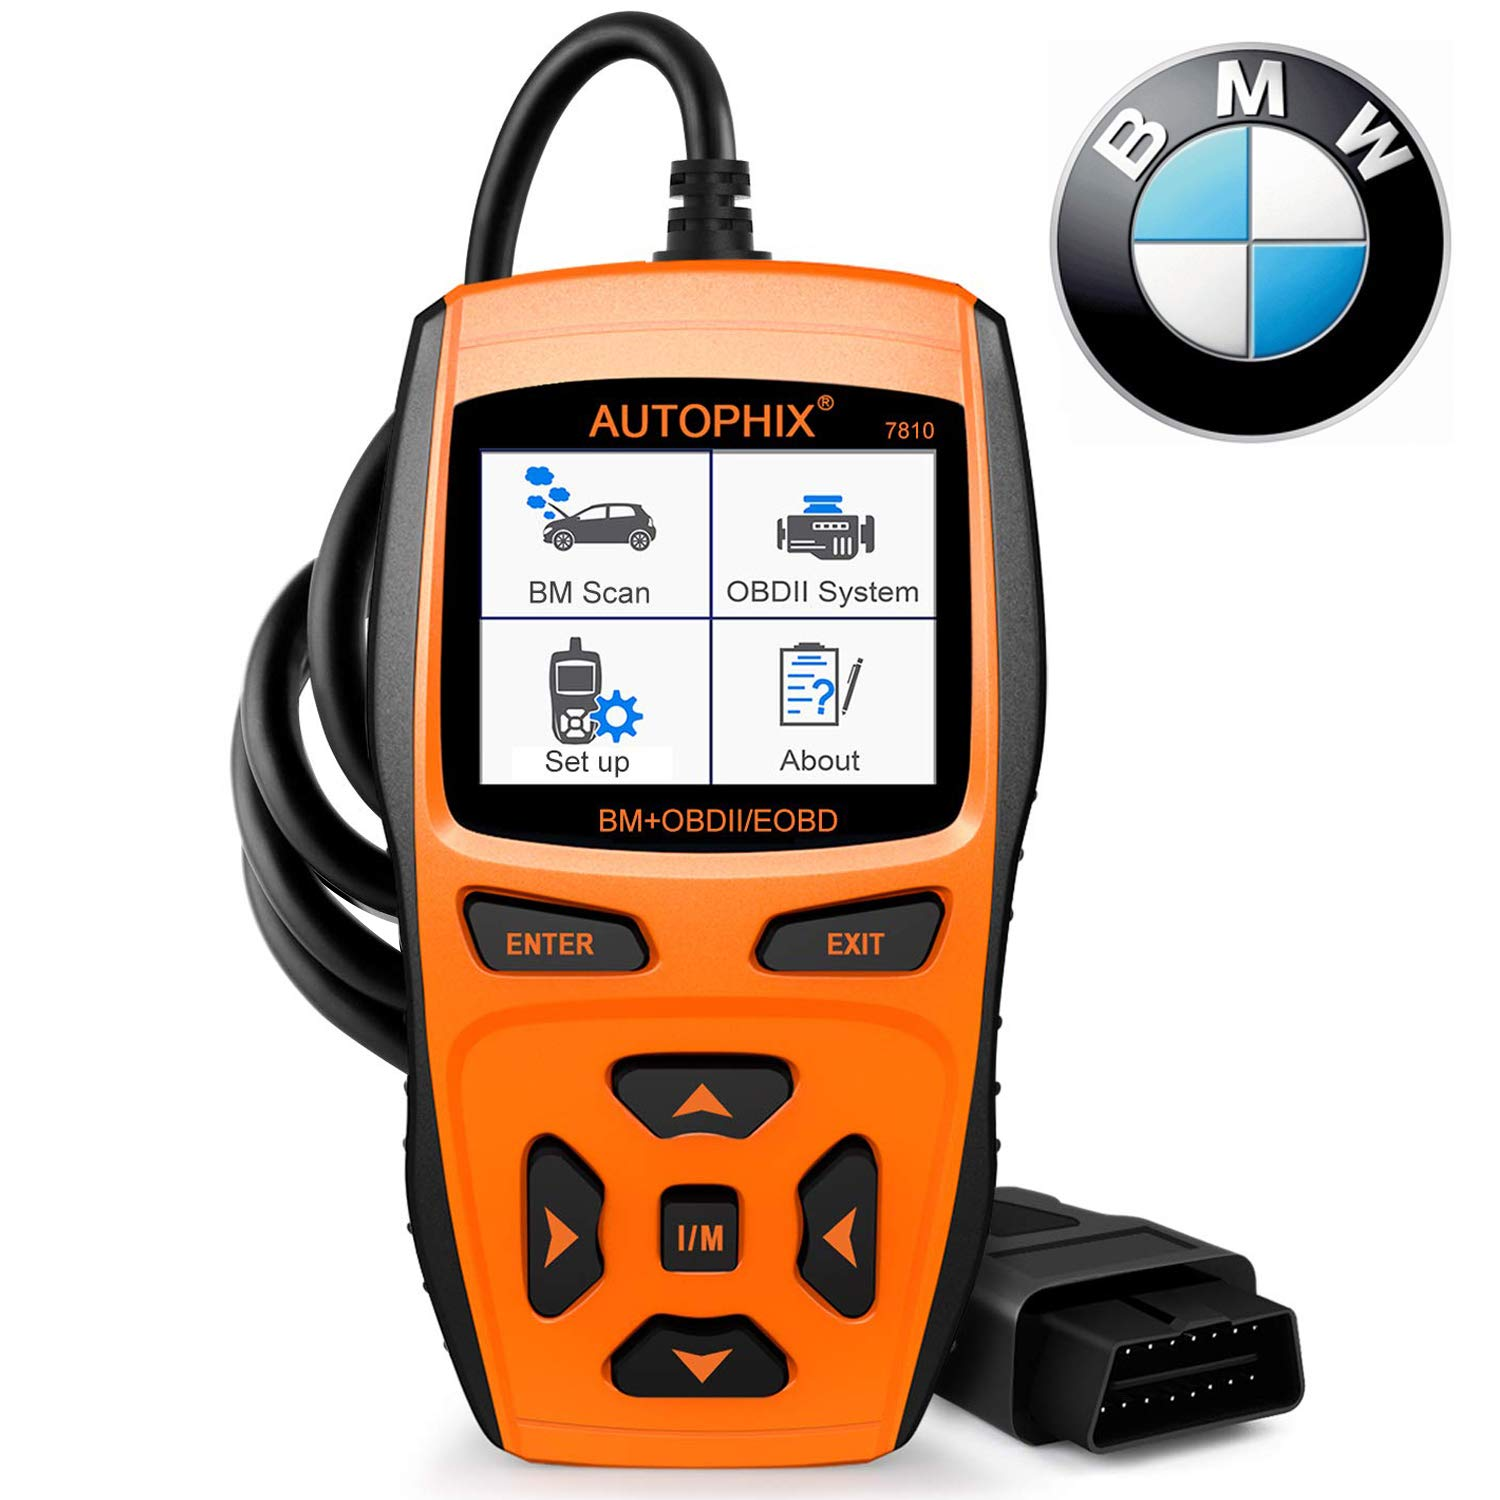 Scan Tool Automotive Scanner for BMW,AUTOPHIX 7810 Code Reader OBD2 Scanner/All System Car Diagnostic Scanner with Engine/EPB/SAS/EGS/DME/DDE/CBS/ECU/F Chassis Reset BMW Battery Registration Tool by AUTOPHIX (Image #1)